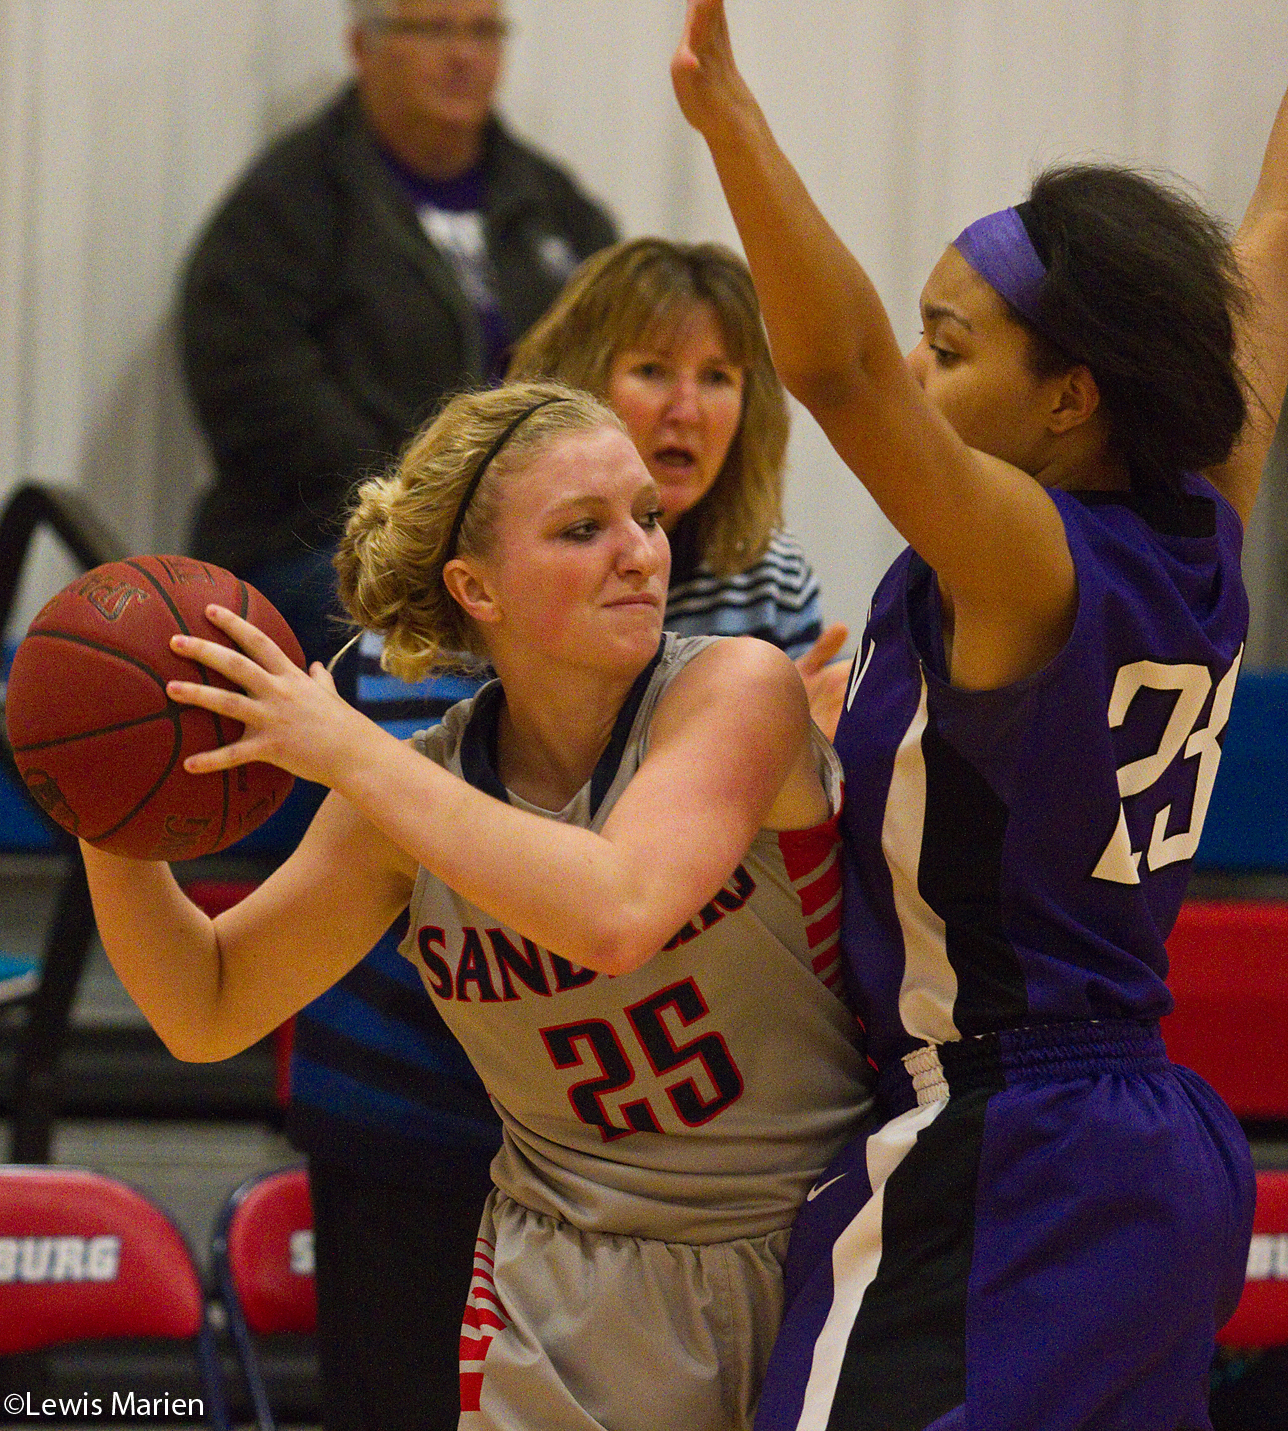 Carl Sandburg College's Kassi Henrekin tries to elude Lincoln College's Ashanti Barnett on Nov. 20 during the Chargers' game with the Lynx at Carl Sandburg College's John M. Lewis Gymnasium. The Chargers won 81-55.